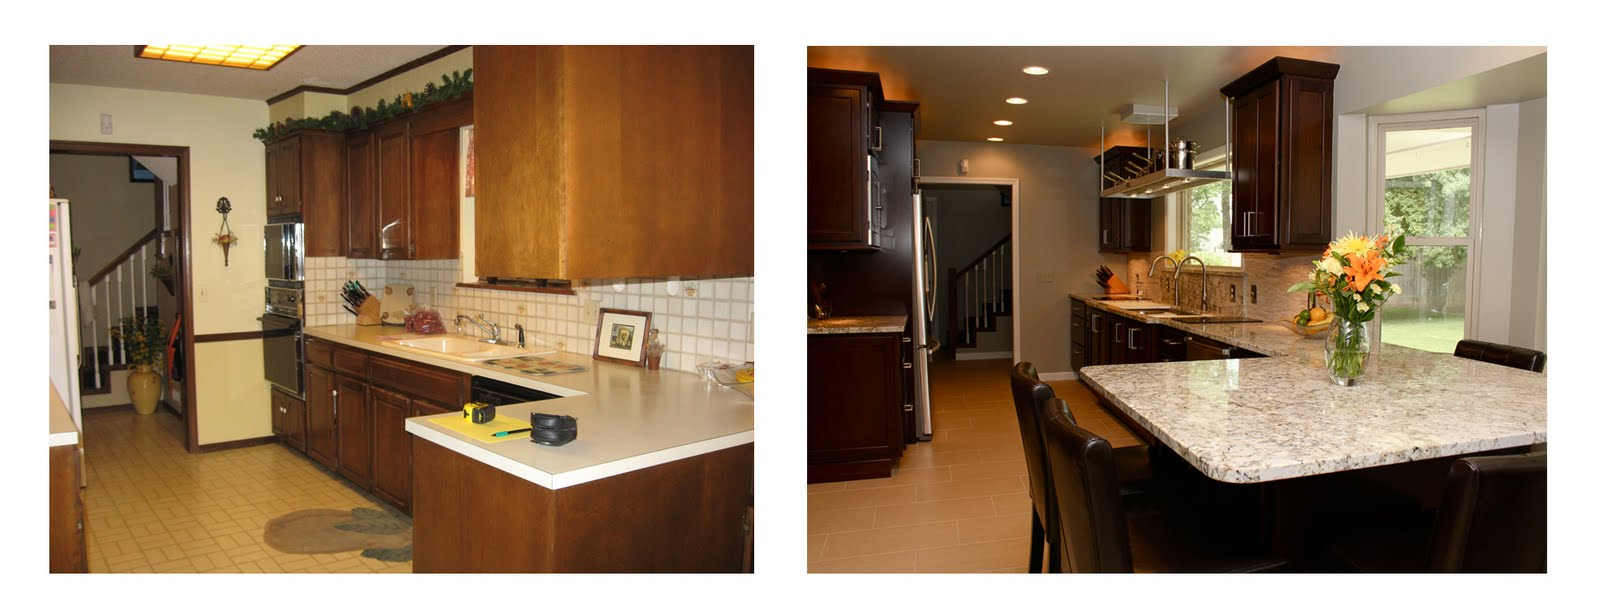 Opening A Galley Kitchen Up 100  Open Galley Kitchen Designs   Track Lighting U2026